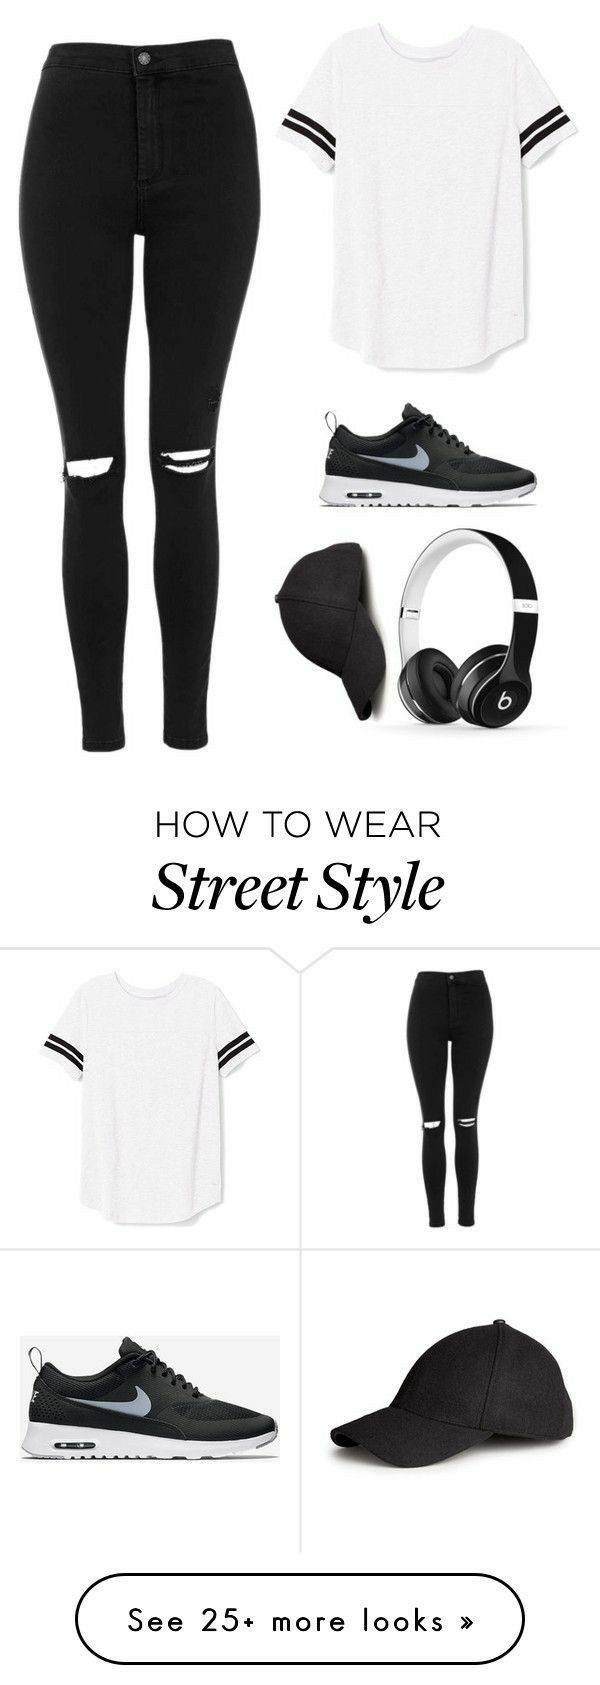 45+ How To Wear Cute Outfits Summer Outfits School Outfits For Teens, What To Wear Ripped Denim Outfits With 2019 Tank – Cool Style